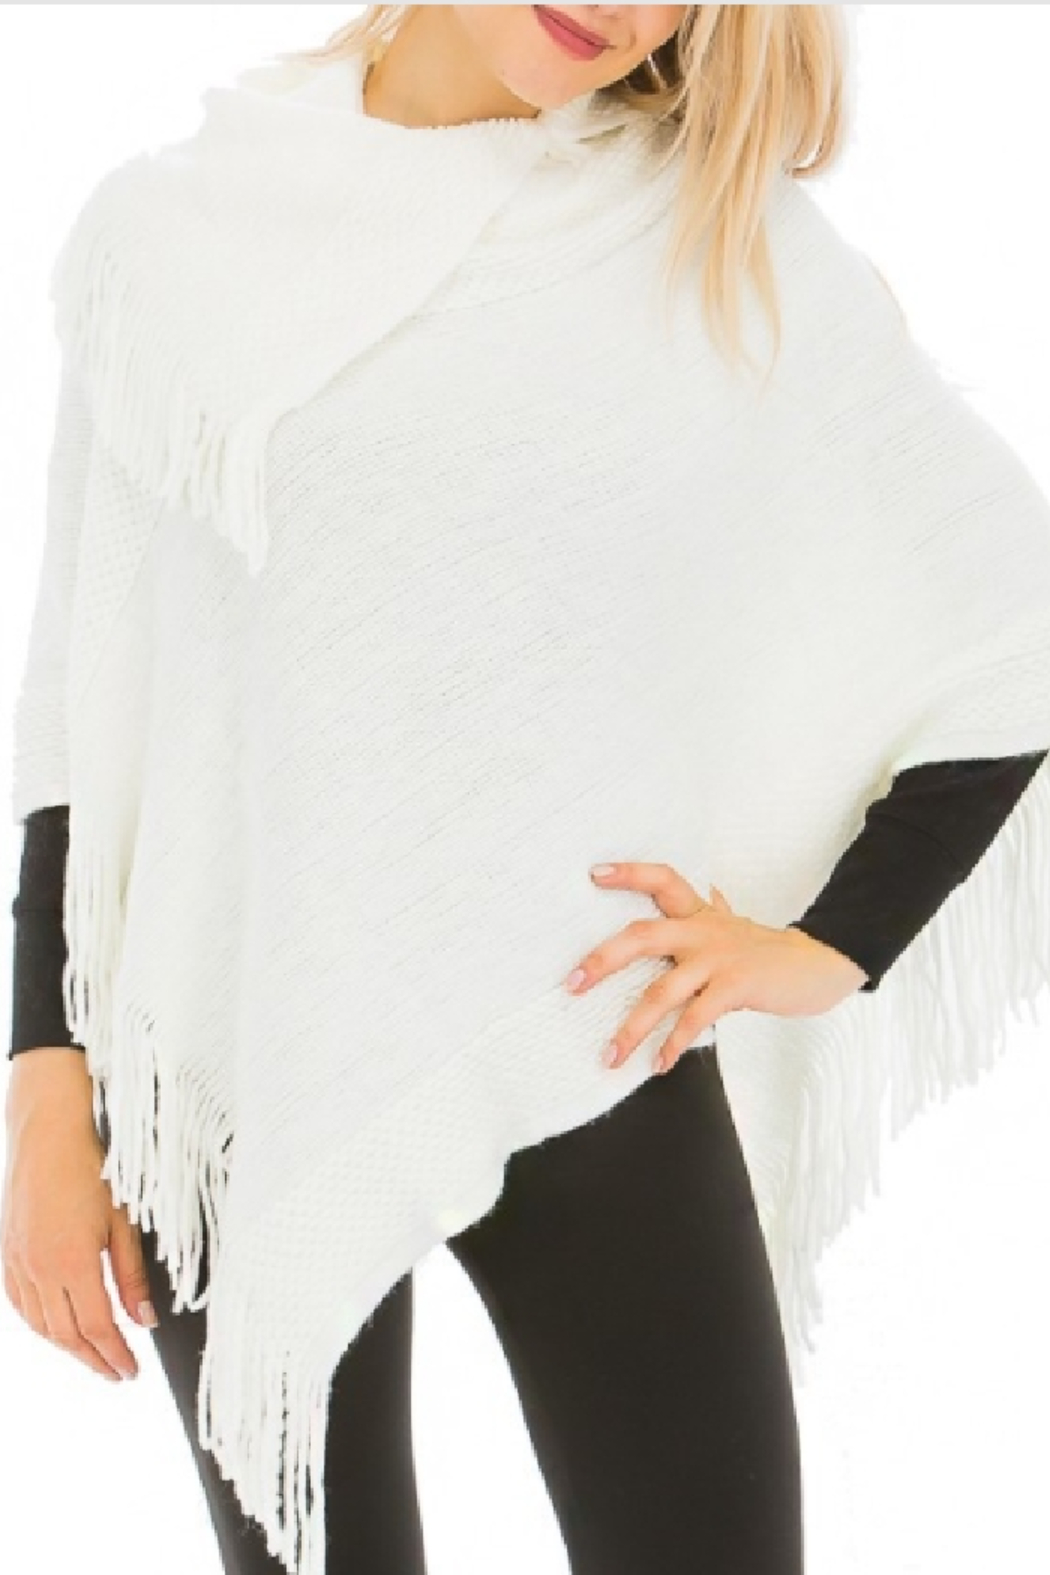 Cap Zone Fringed Knit Cream Poncho - Main Image